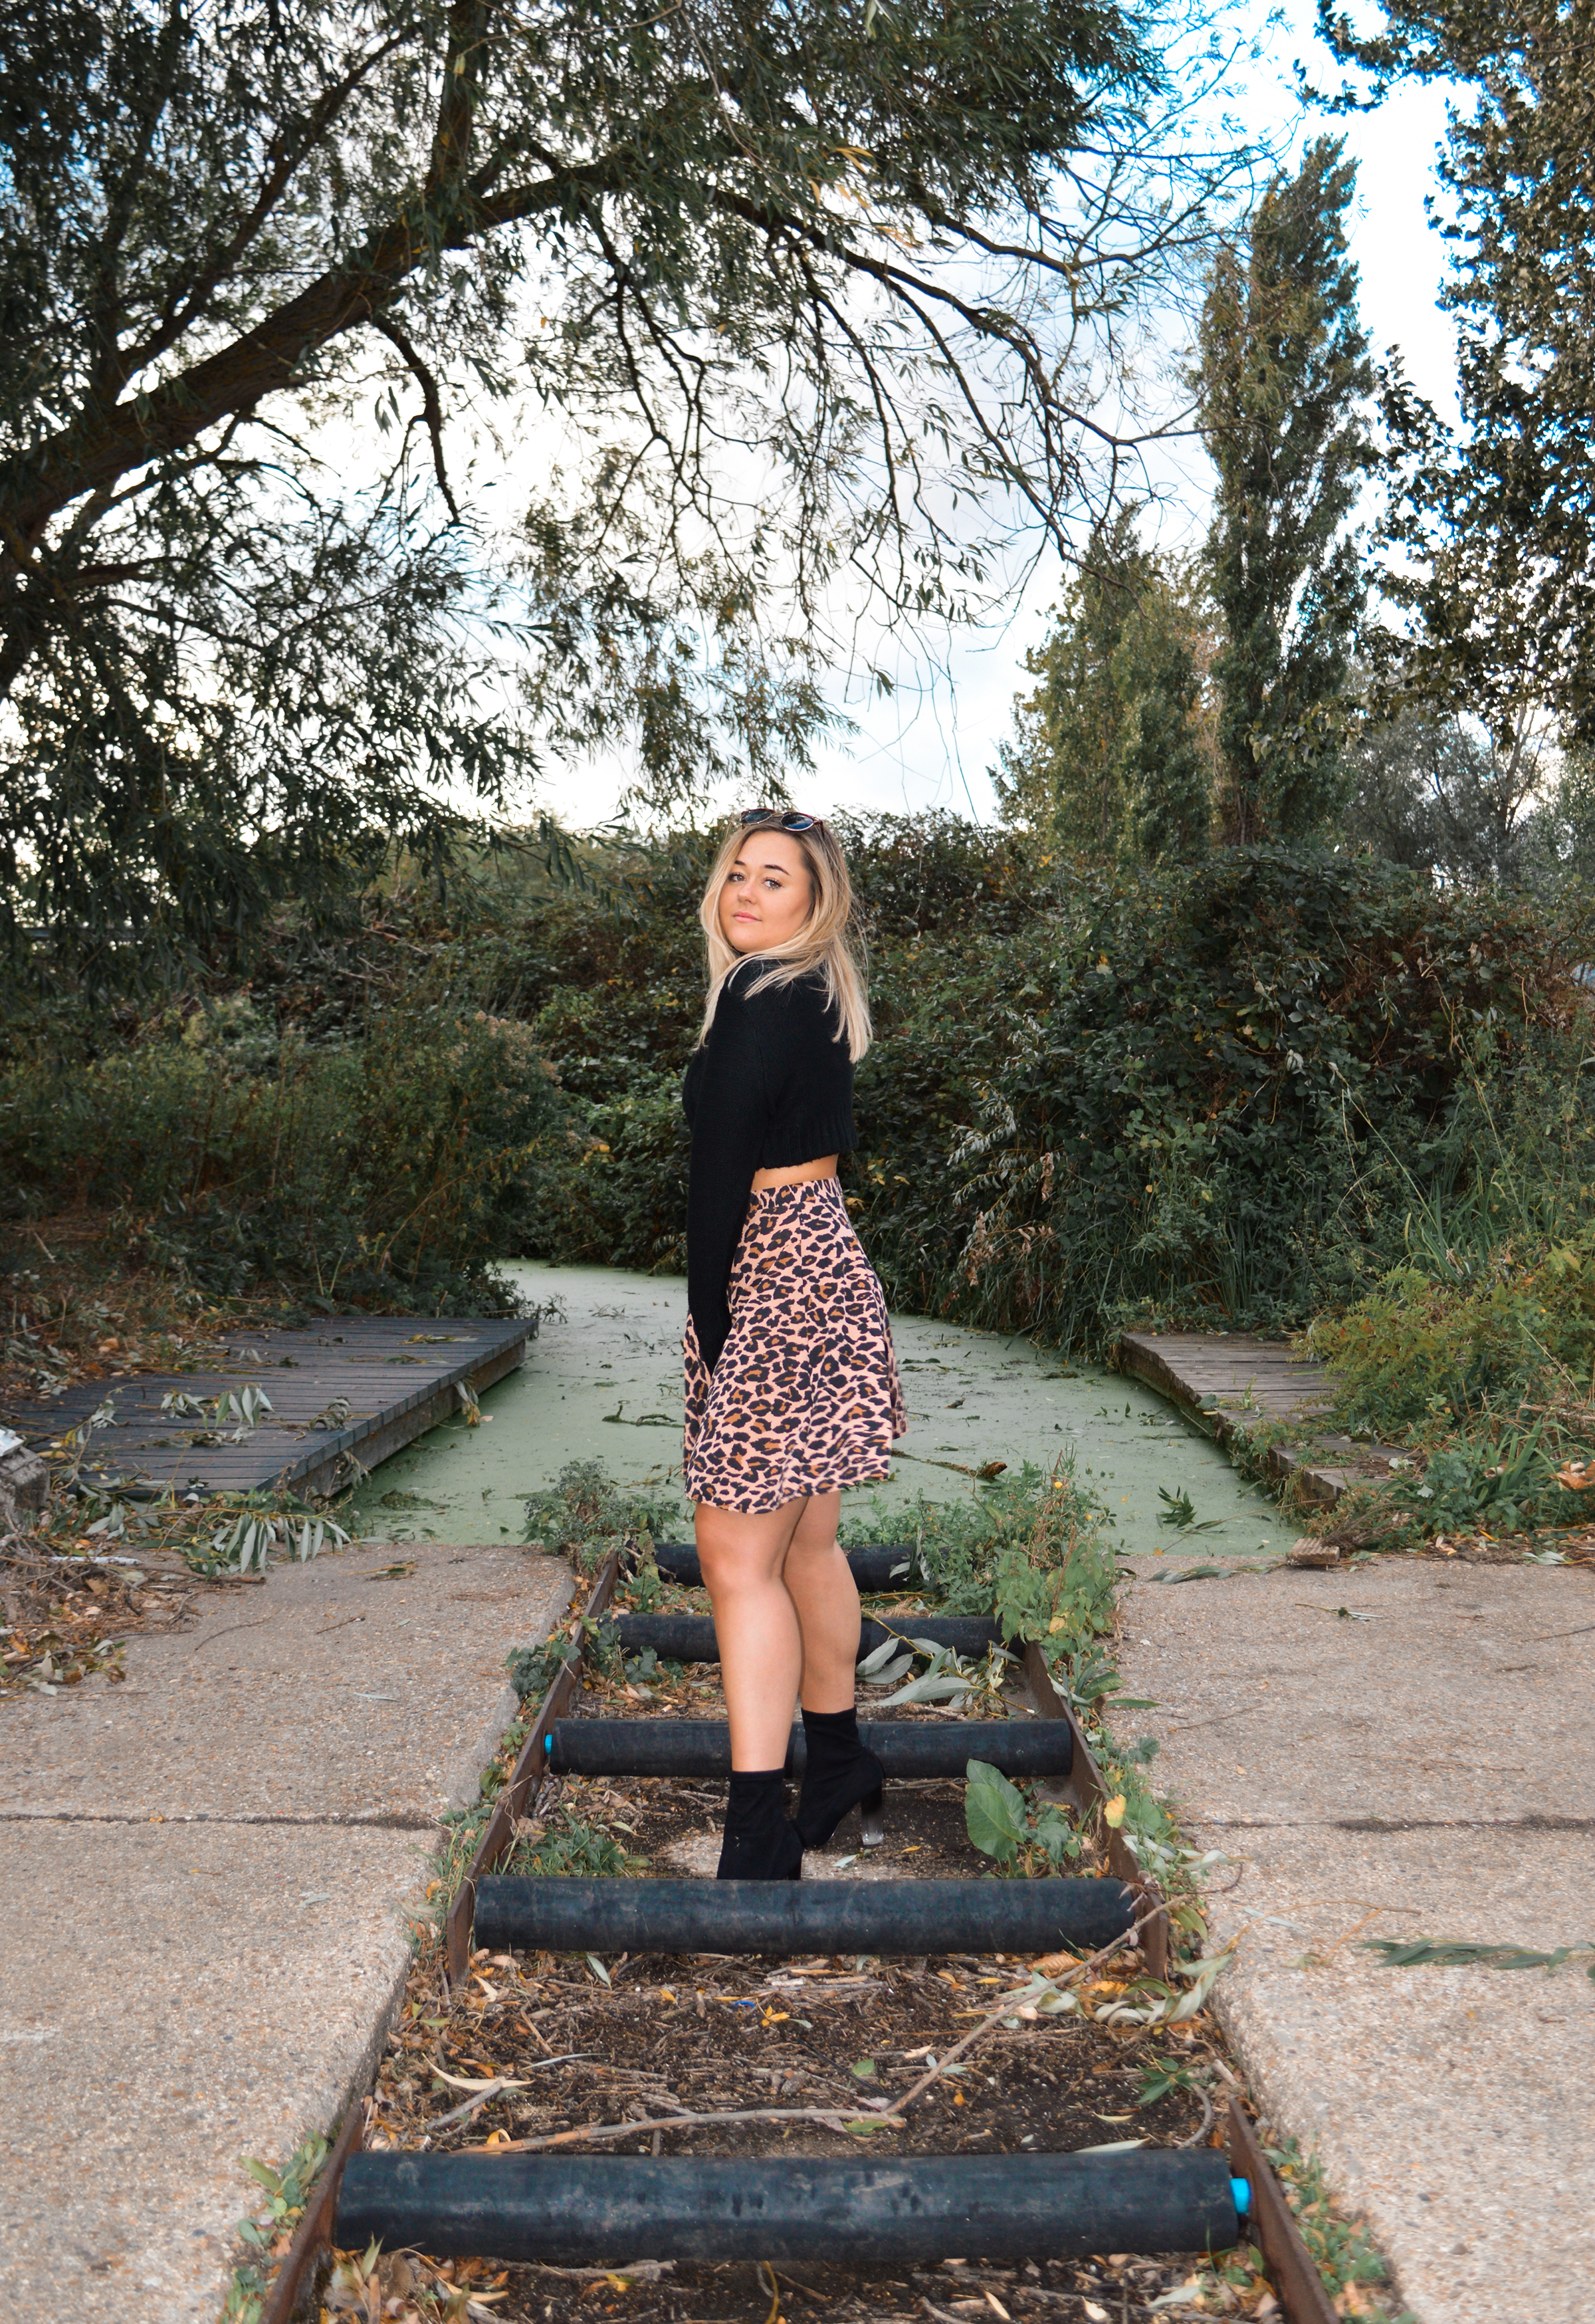 Hannah wears a black turtleneck, leopard print skater skirt and black sock boots with a perspex heel